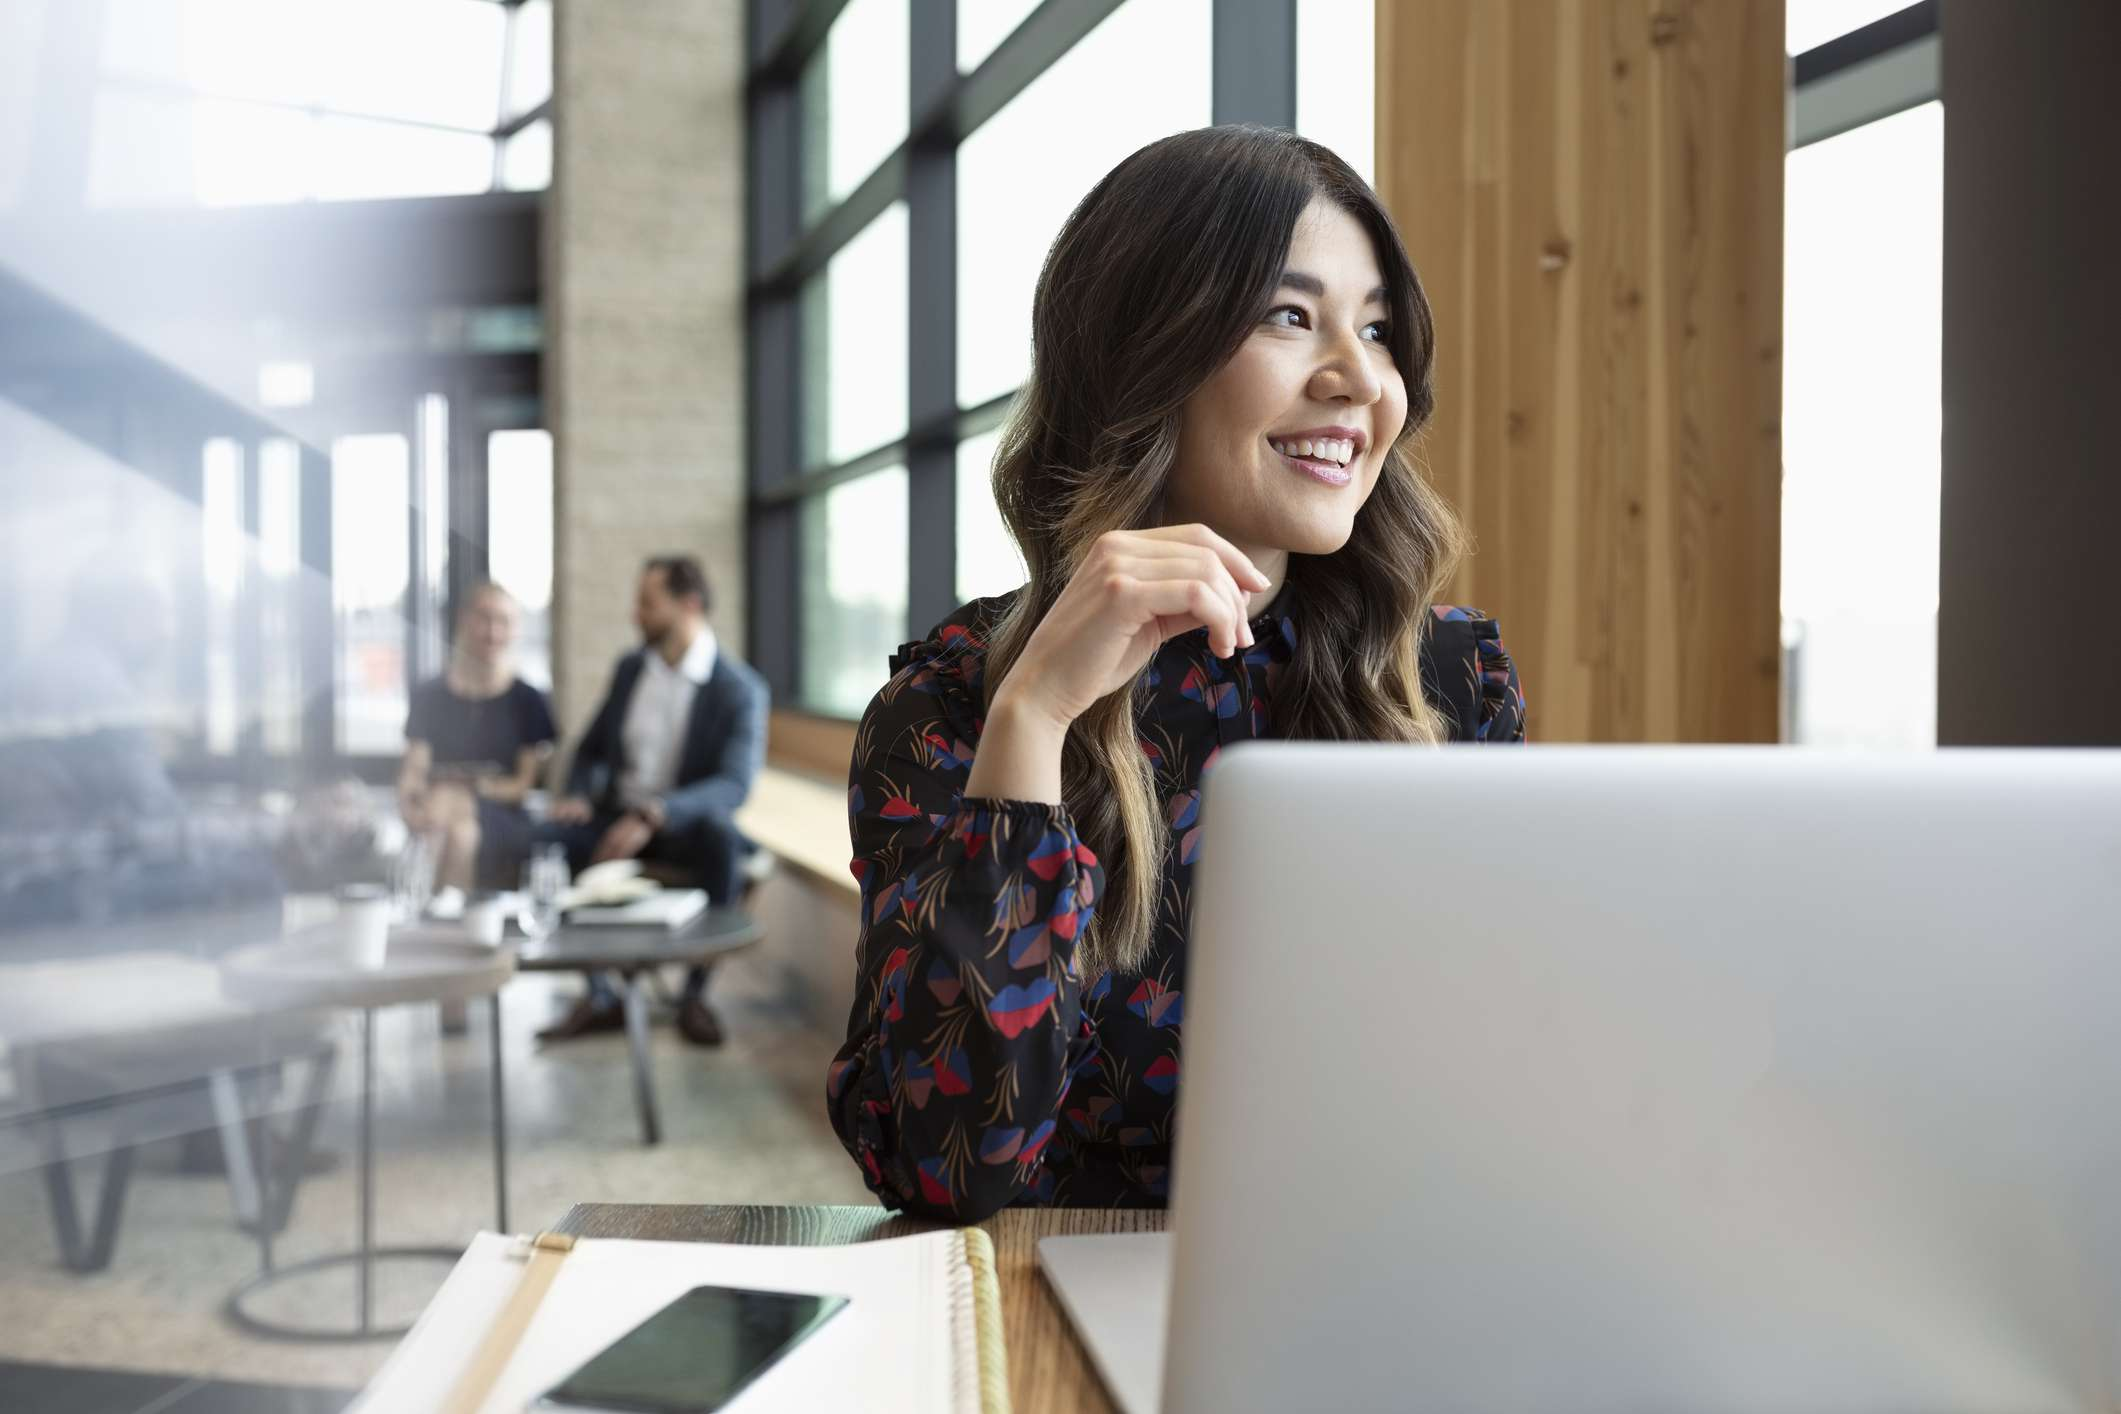 Woman in front of laptop looks into the distance, smiling.